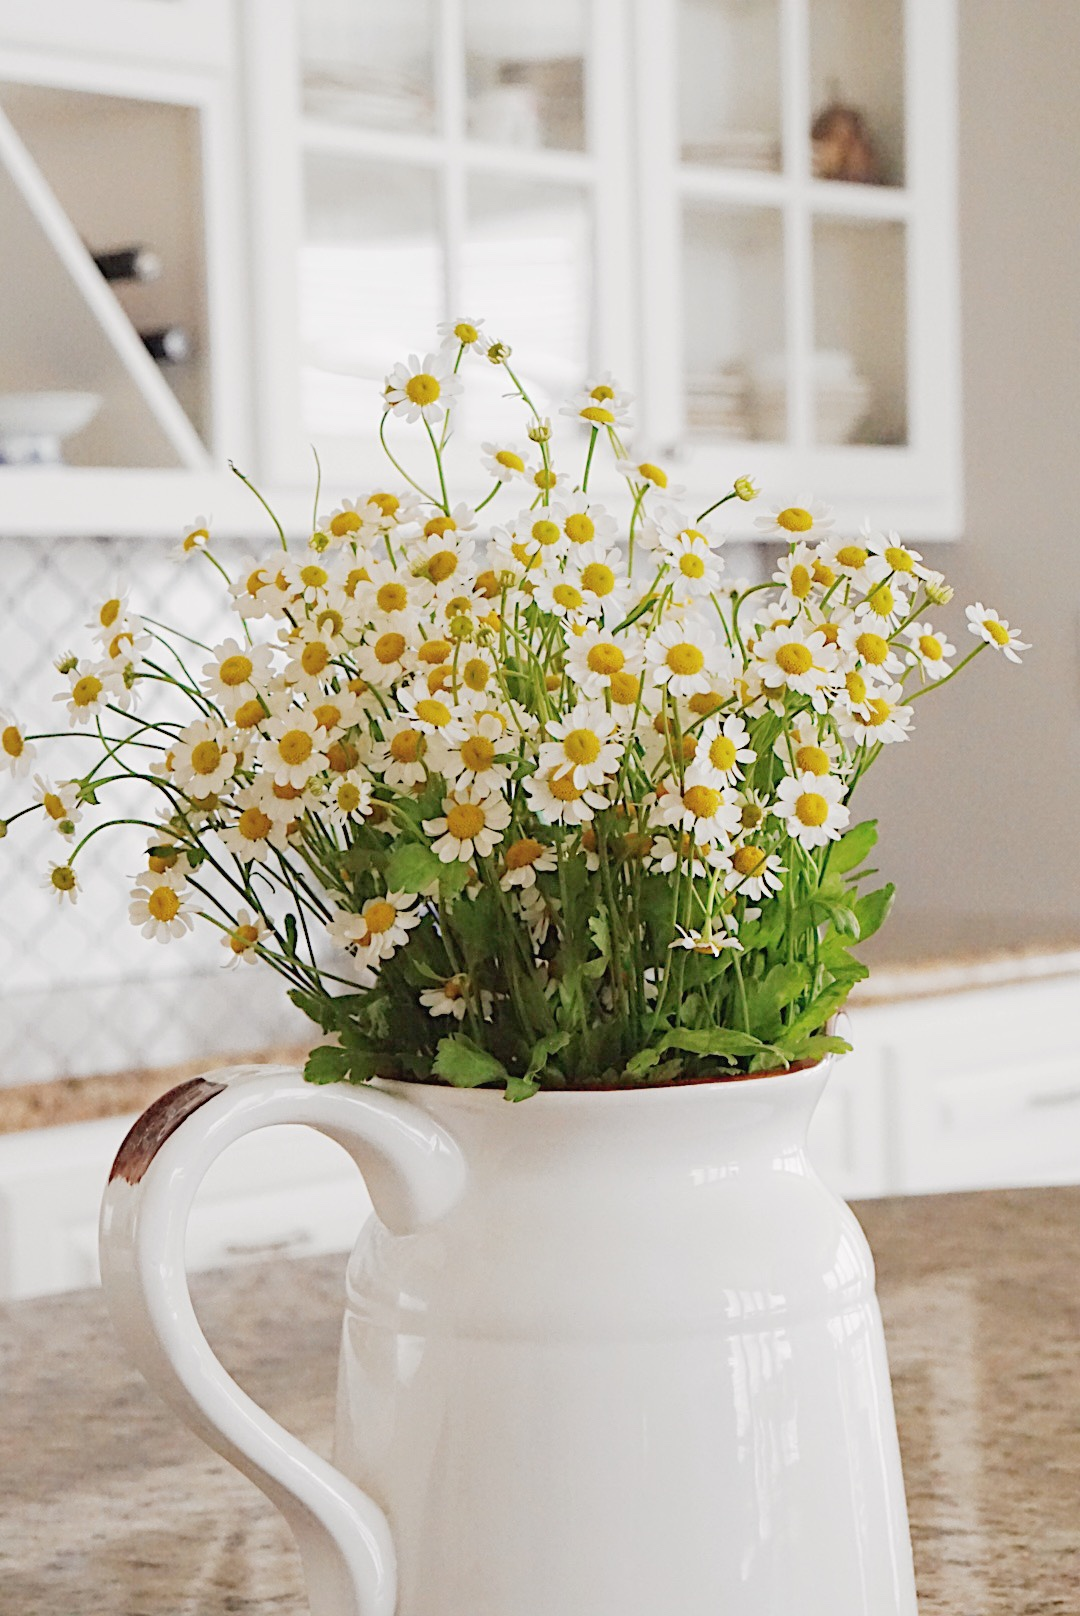 Easter floral decor ideas, Daisys, spring flowers